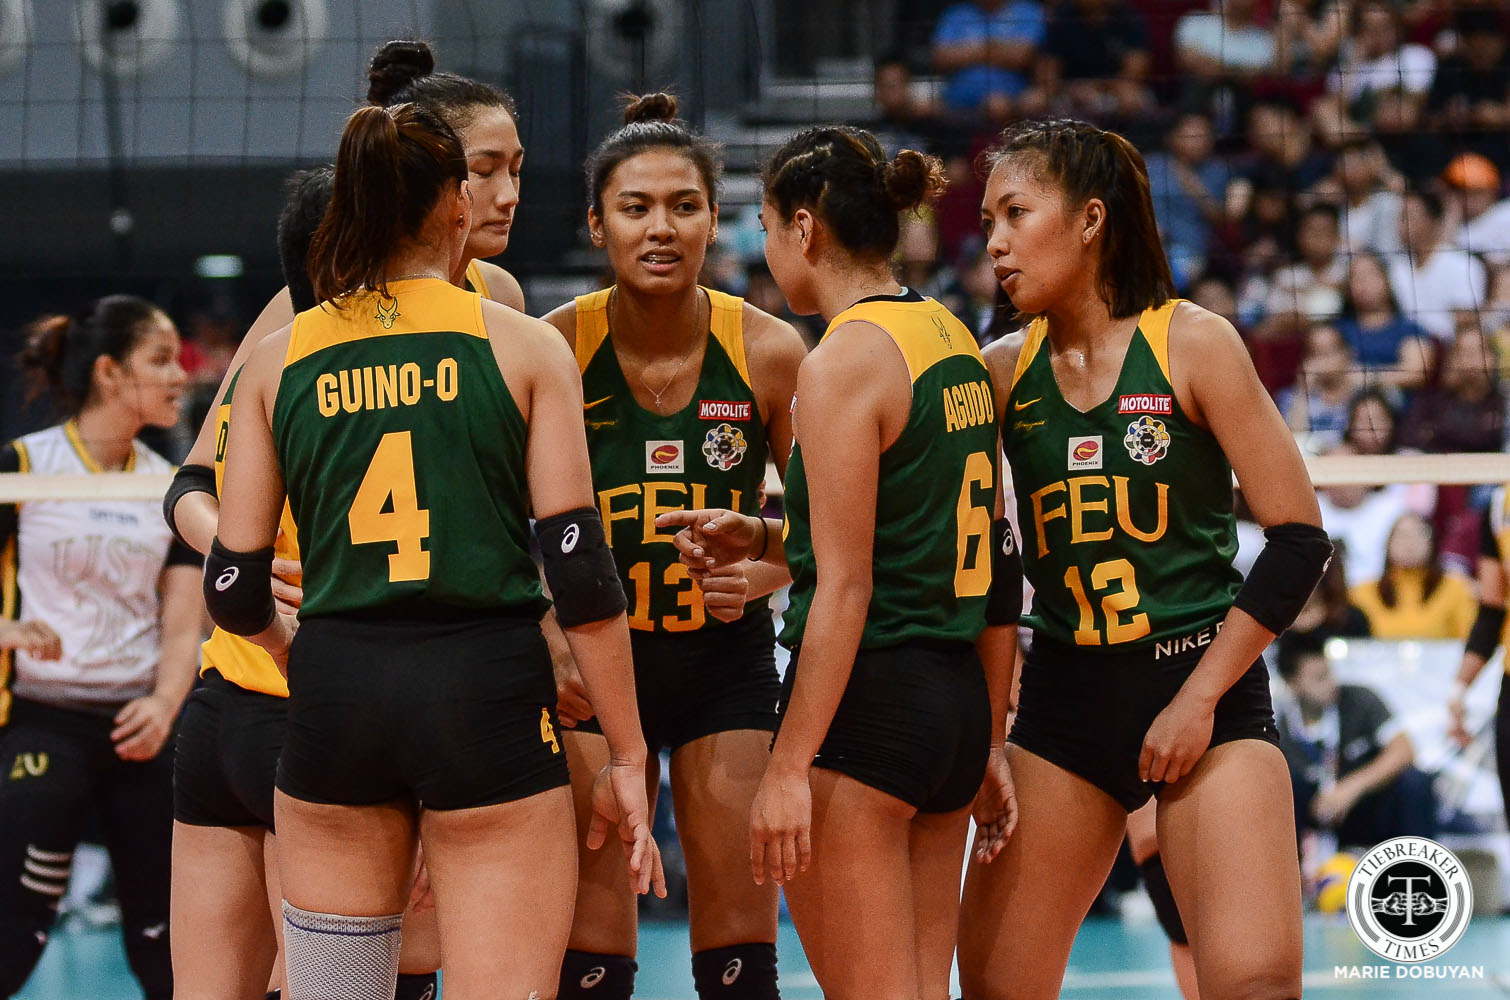 Tiebreaker Times George Pascua rues FEU's emotions from clinching Final Four seat before UST match FEU News UAAP Volleyball  UAAP Season 81 Women's Volleyball UAAP Season 81 George Pascua FEU Women's Volleyball